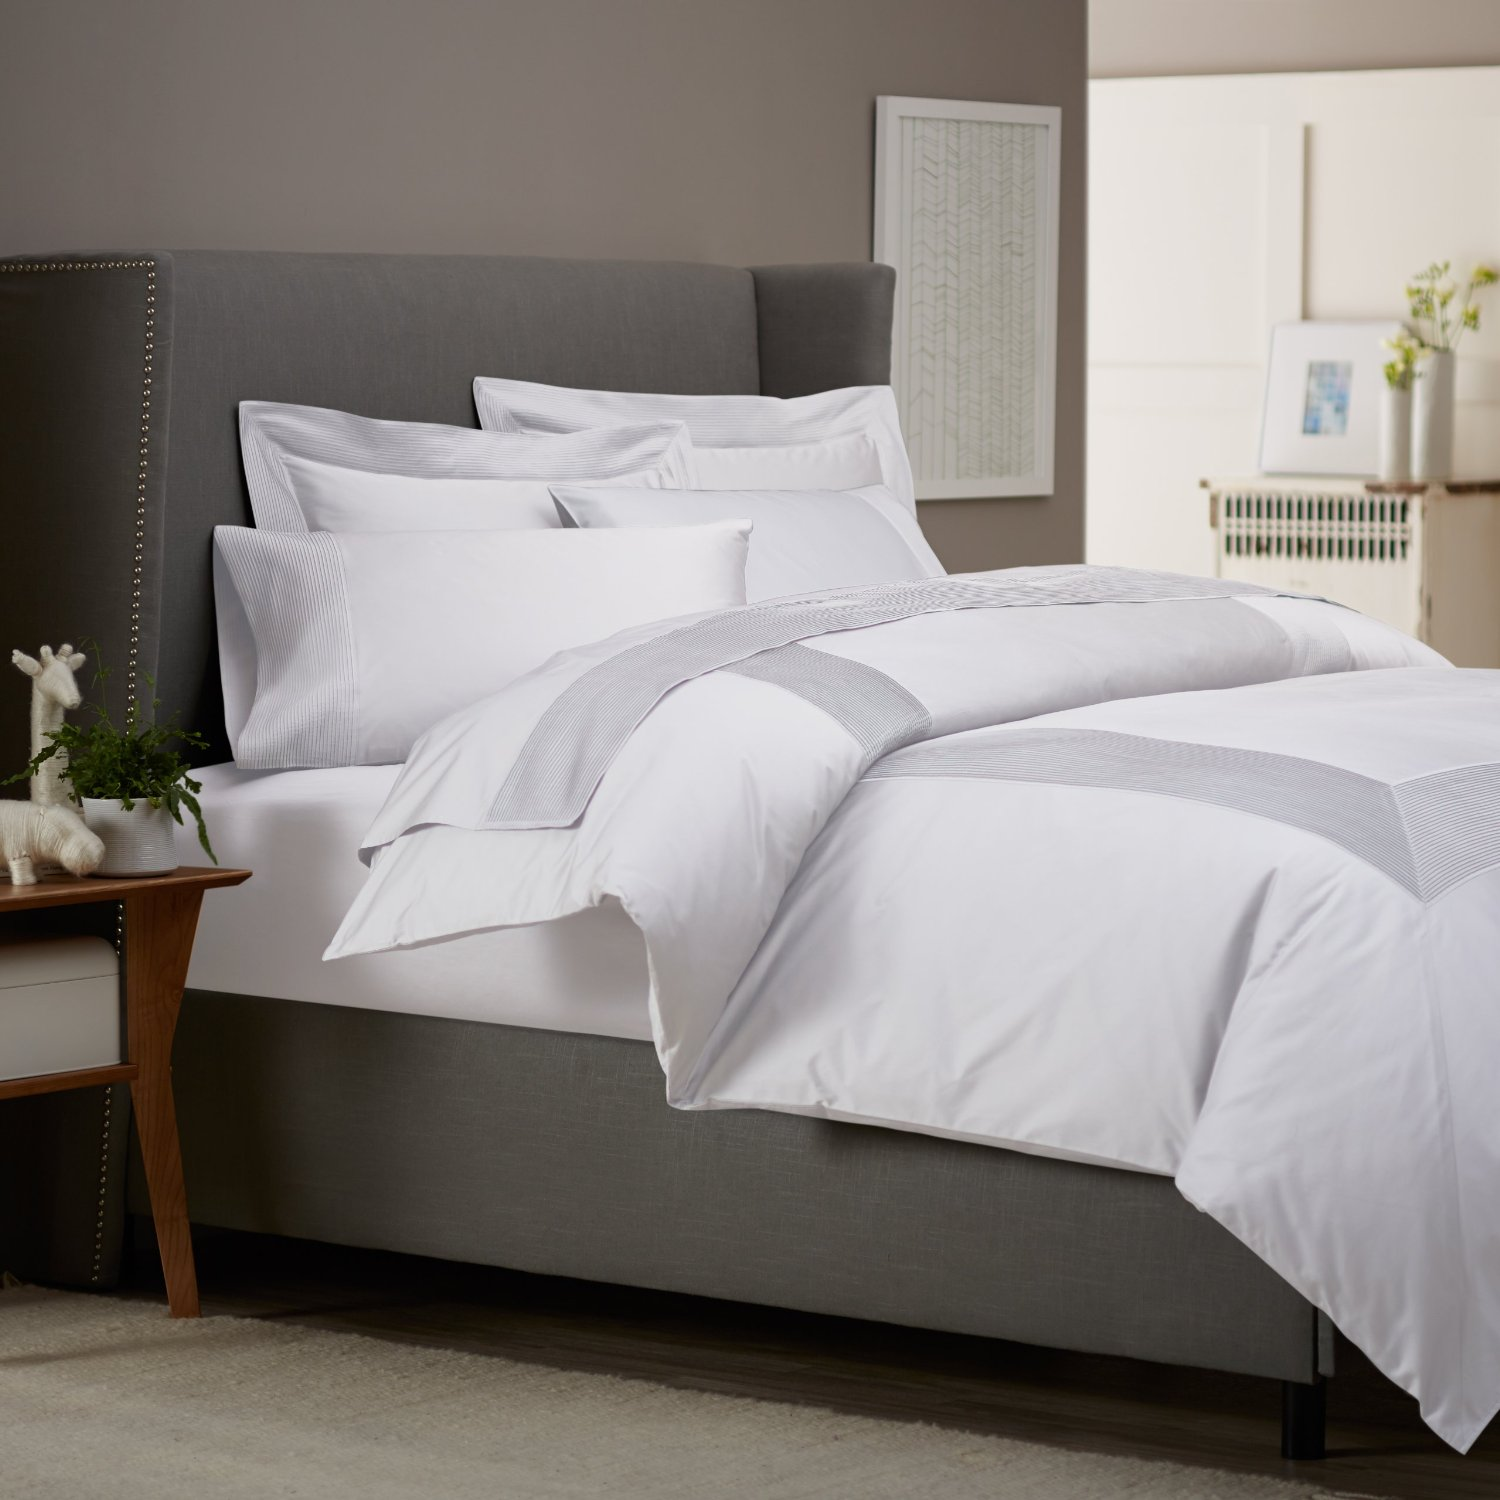 king bed sets get alluring visage by displaying a white comforter sets 12029